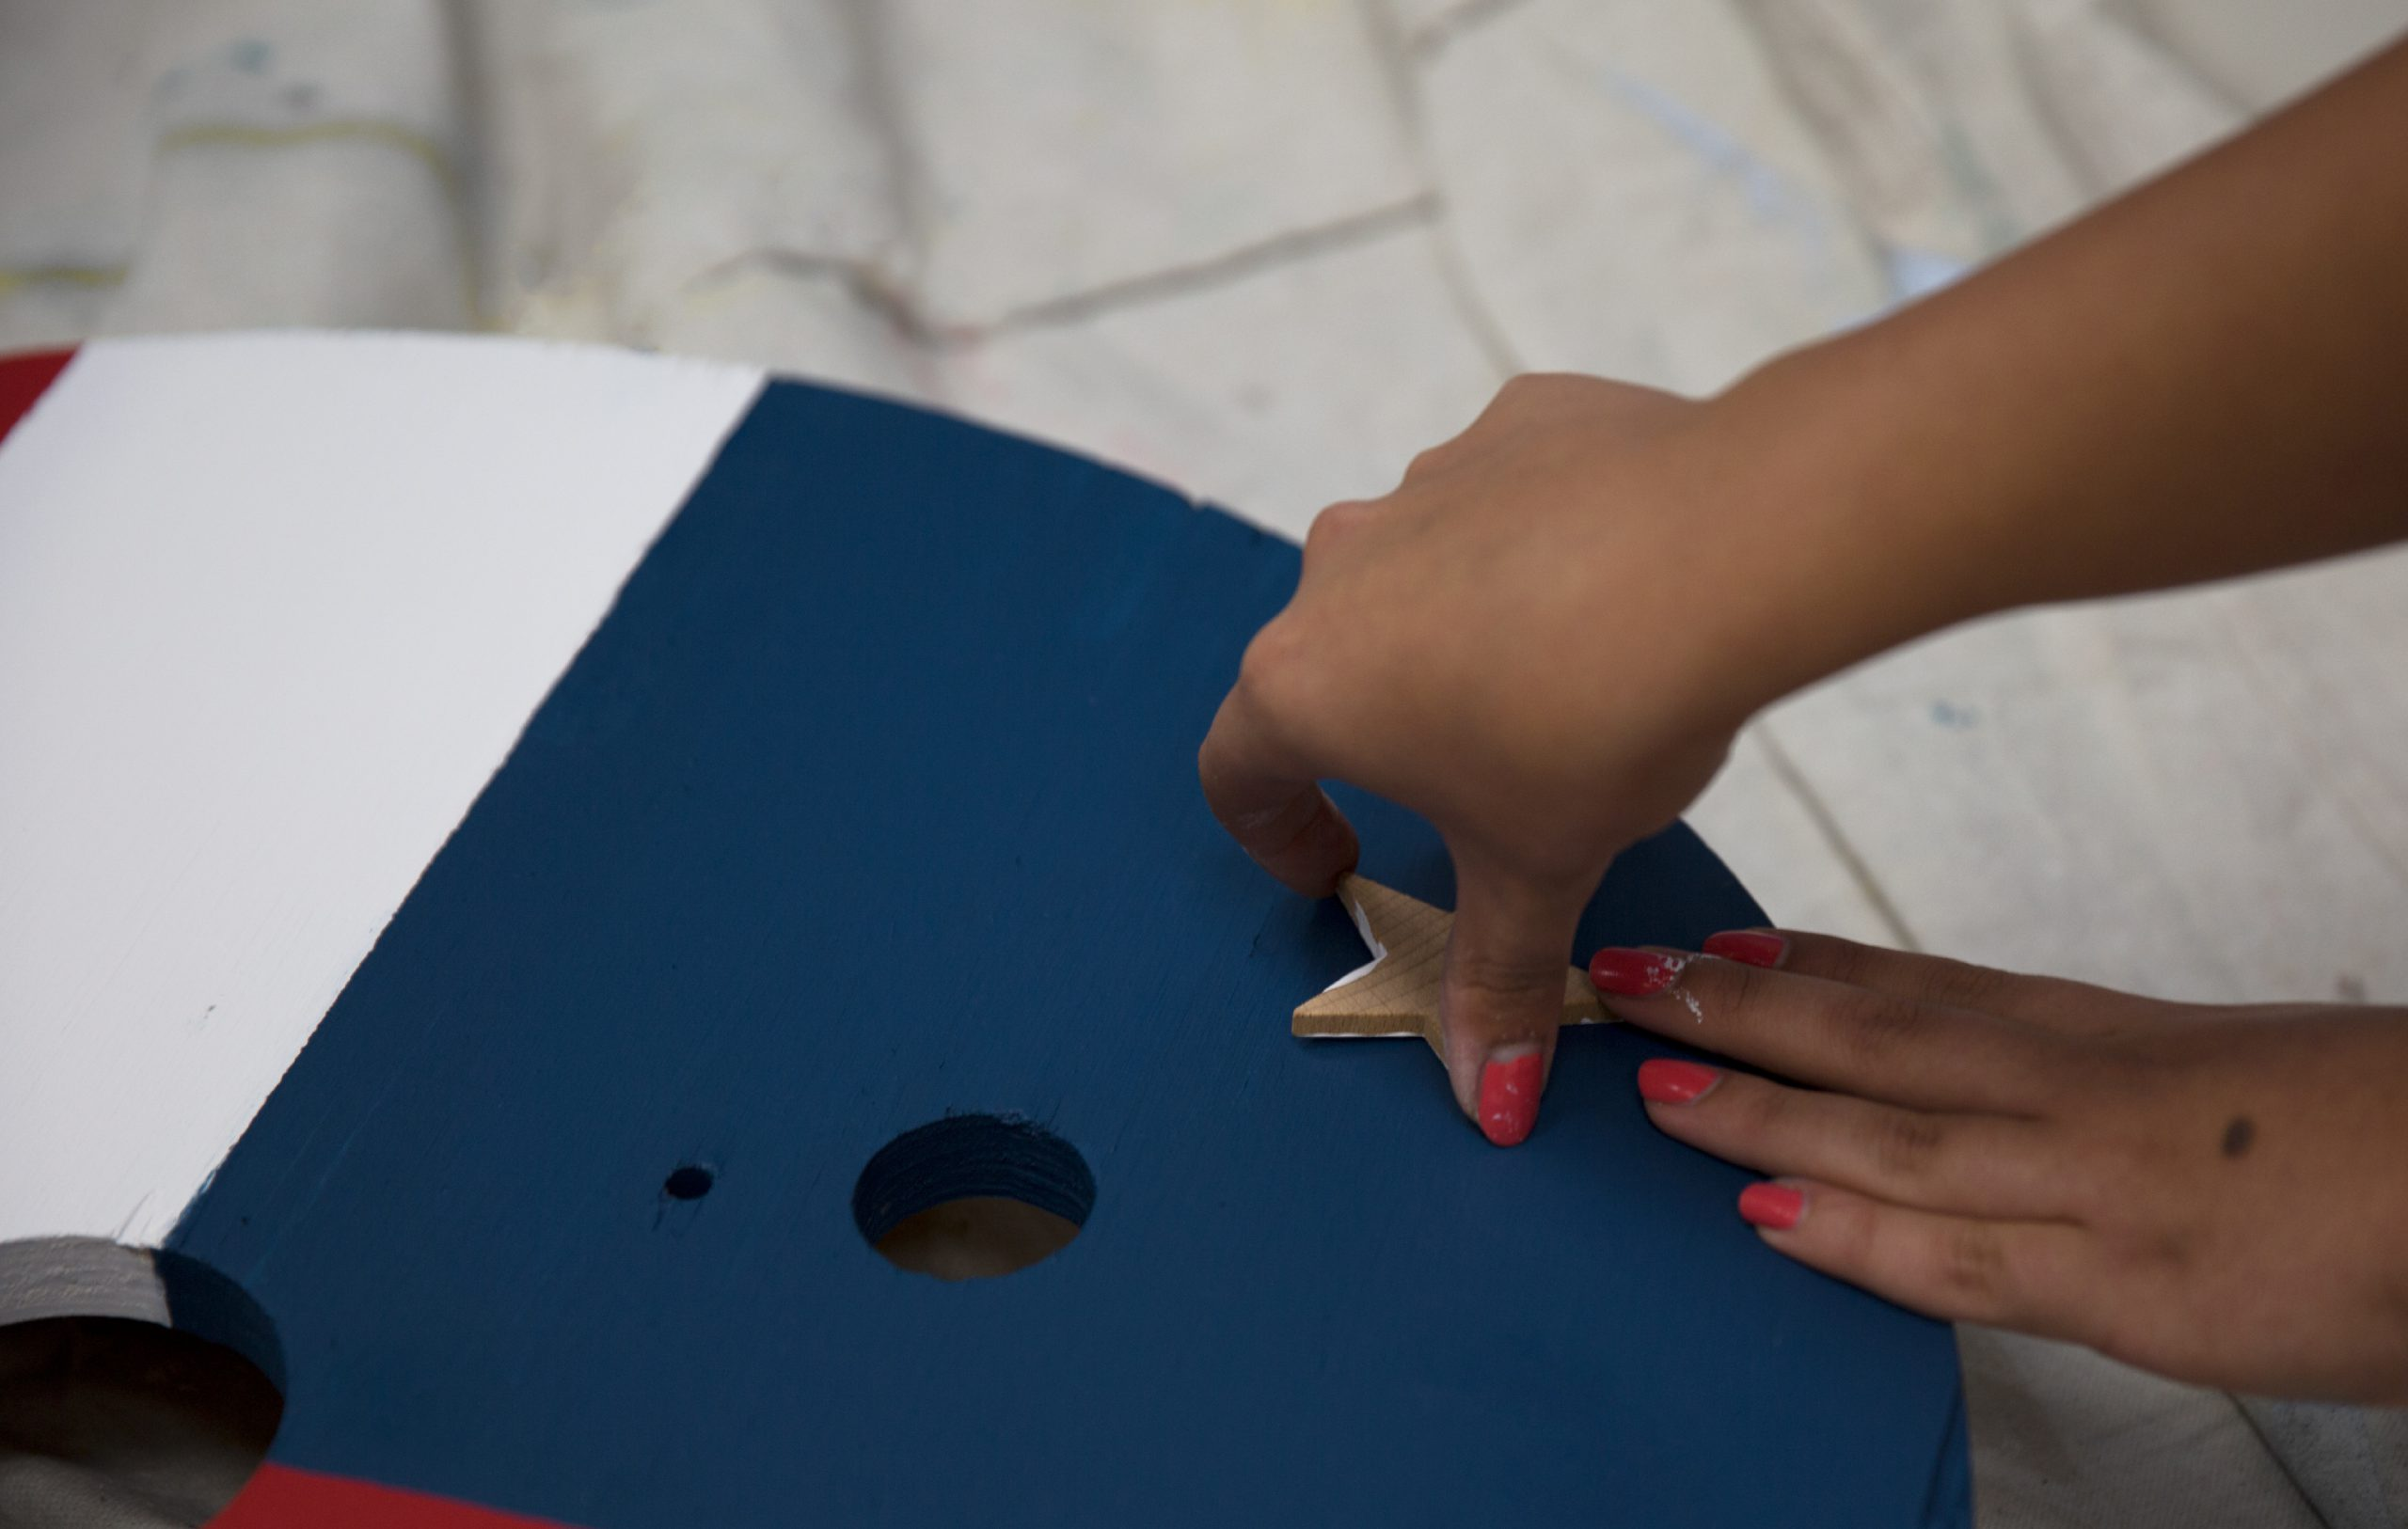 Stamping the painted star stamp on to flag design.